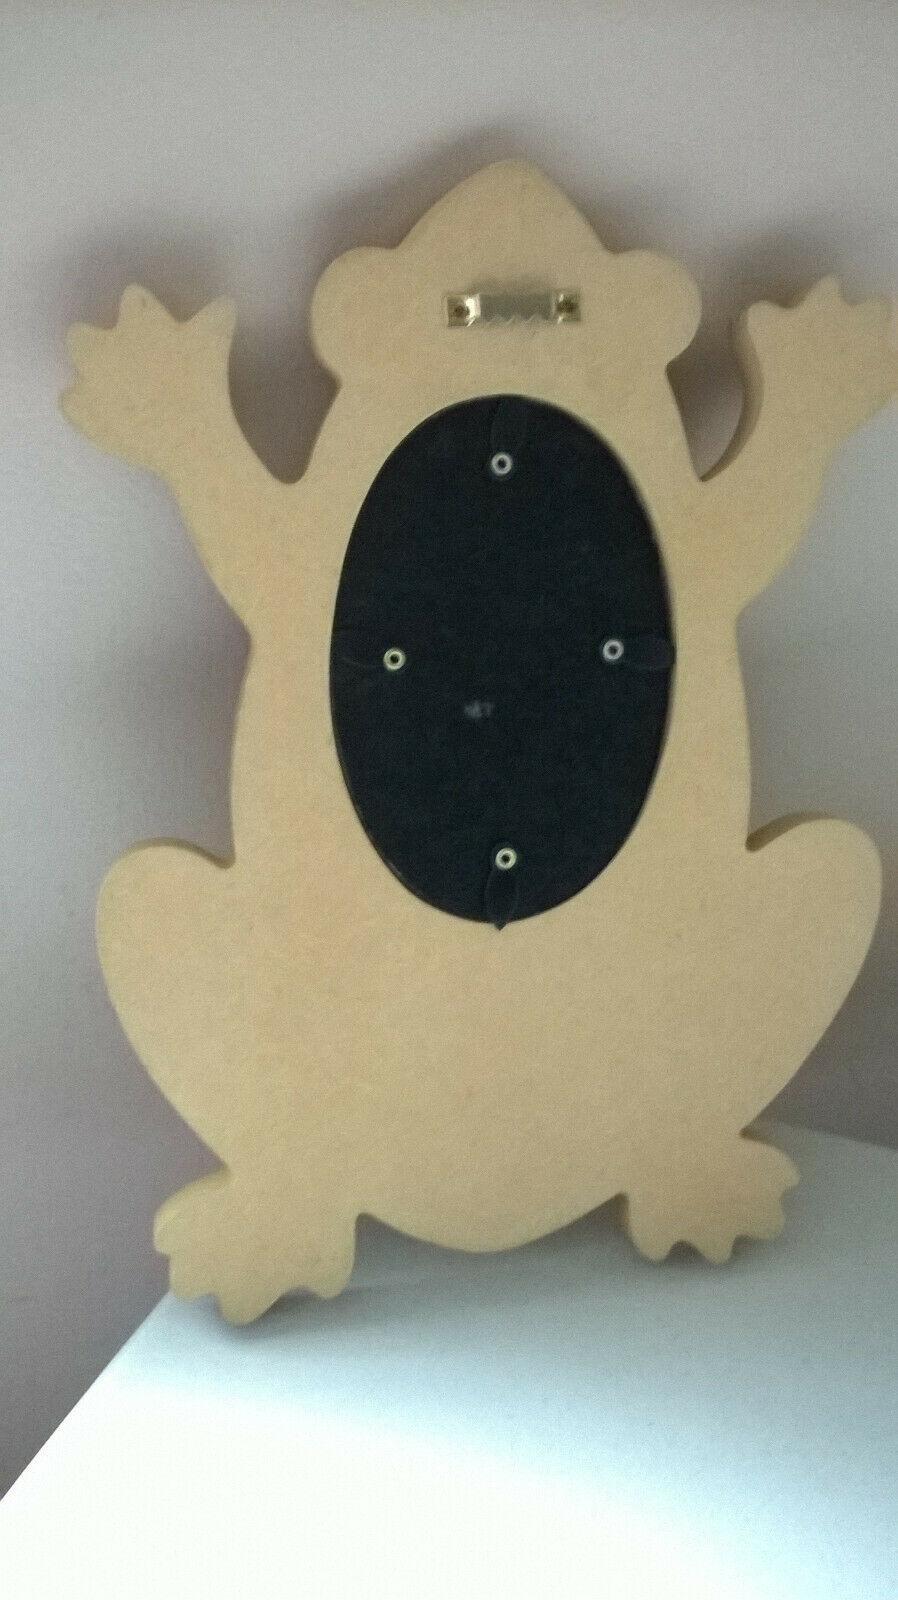 """SONOMA WOODEN FROG WALL FRAME W/HANGING COAT, ETC. HOOK 11.25"""" FITS 3.5x5 PHOTO - $9.89"""